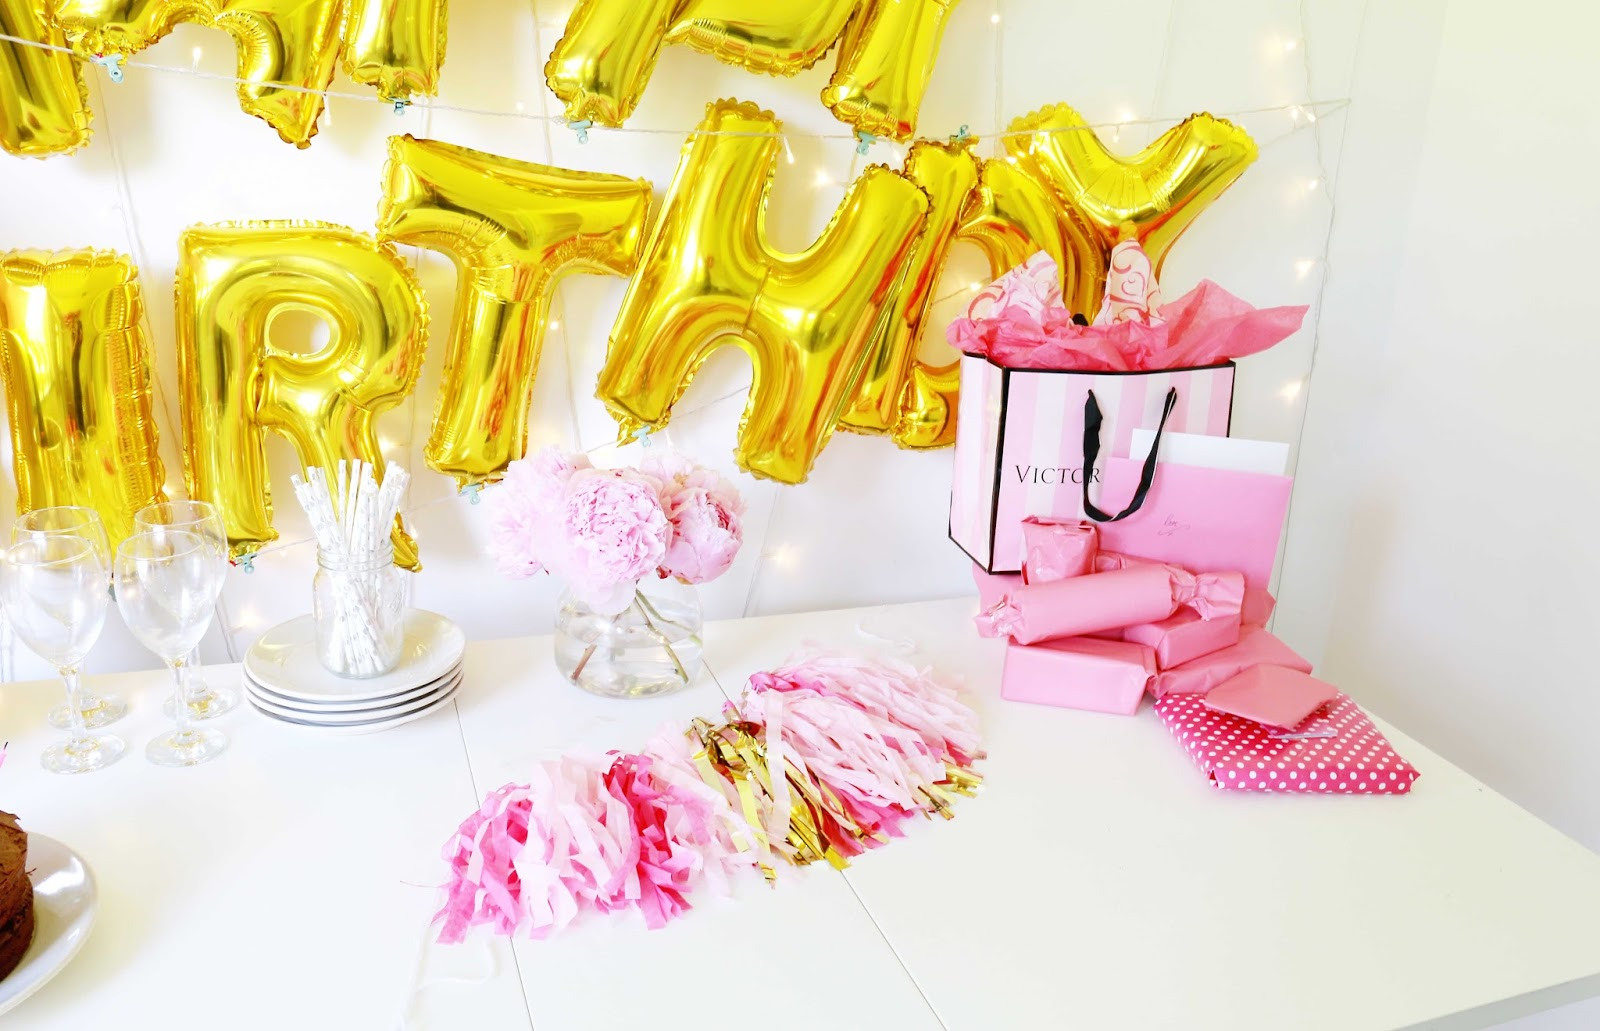 party, how to do birthday brunch on a budget, pinterest, balloons, birthday party, lifestyle, party, cheap party, pinterest party ideas, bithday brunch